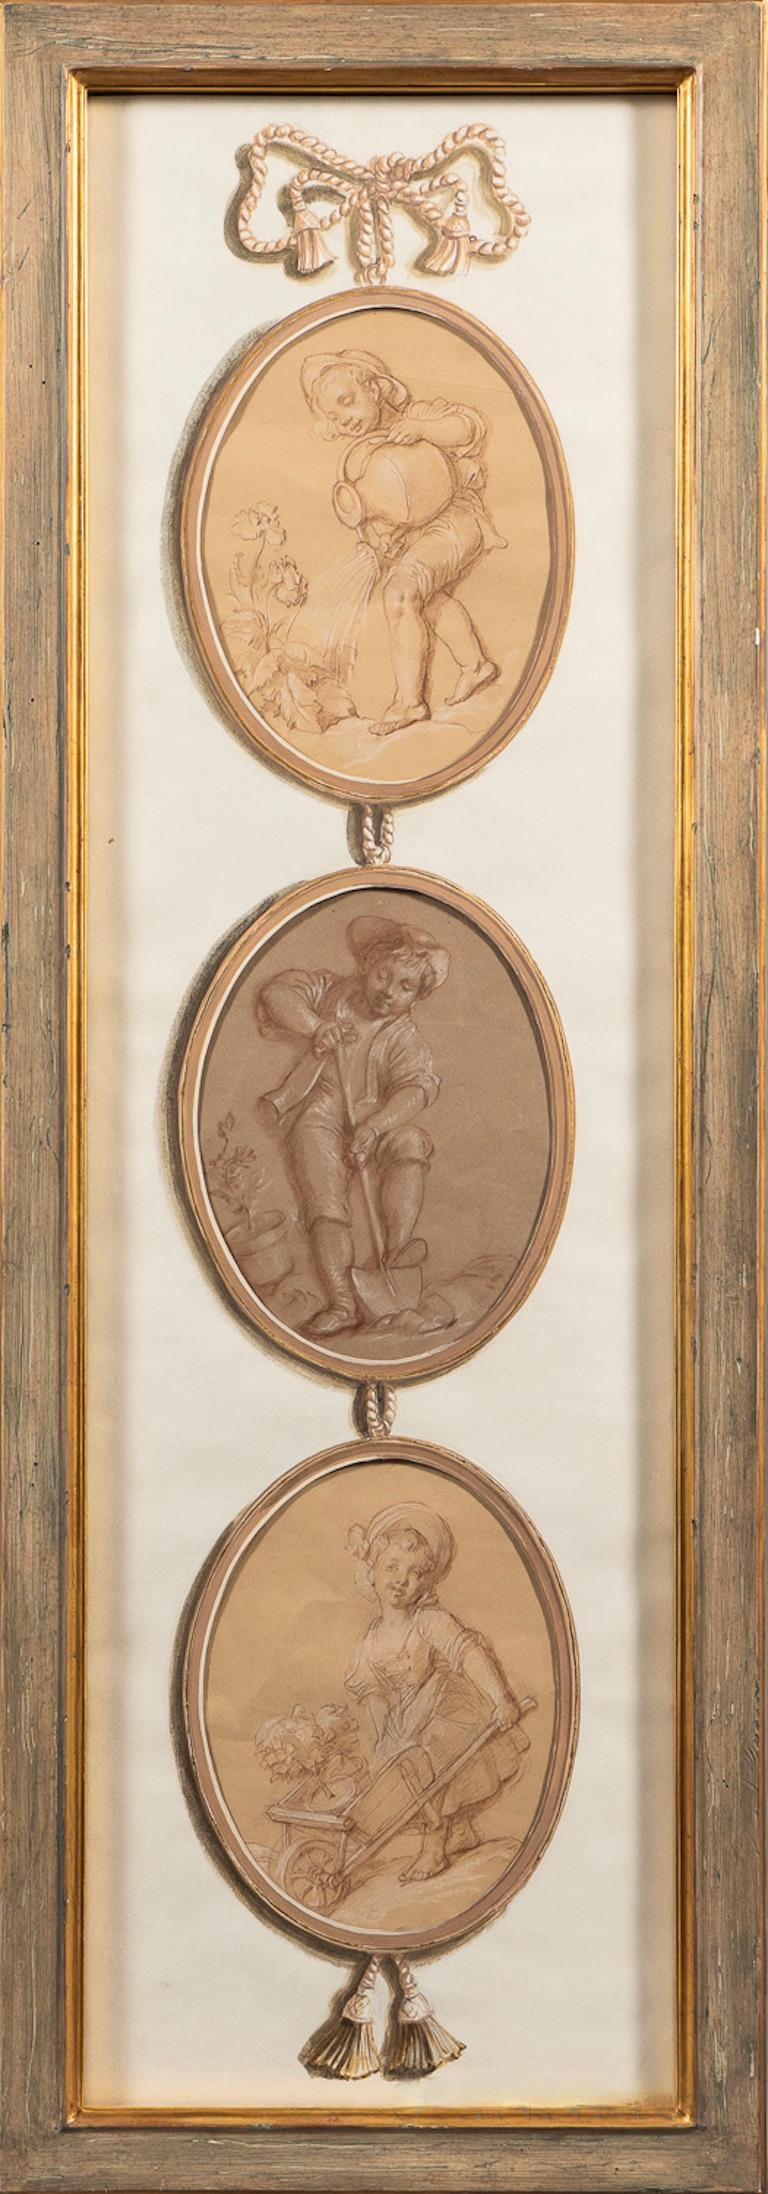 Pair of French 18th Century Old Master Style Drawings in Trompe l'Oeil  In Good Condition For Sale In Essex, MA